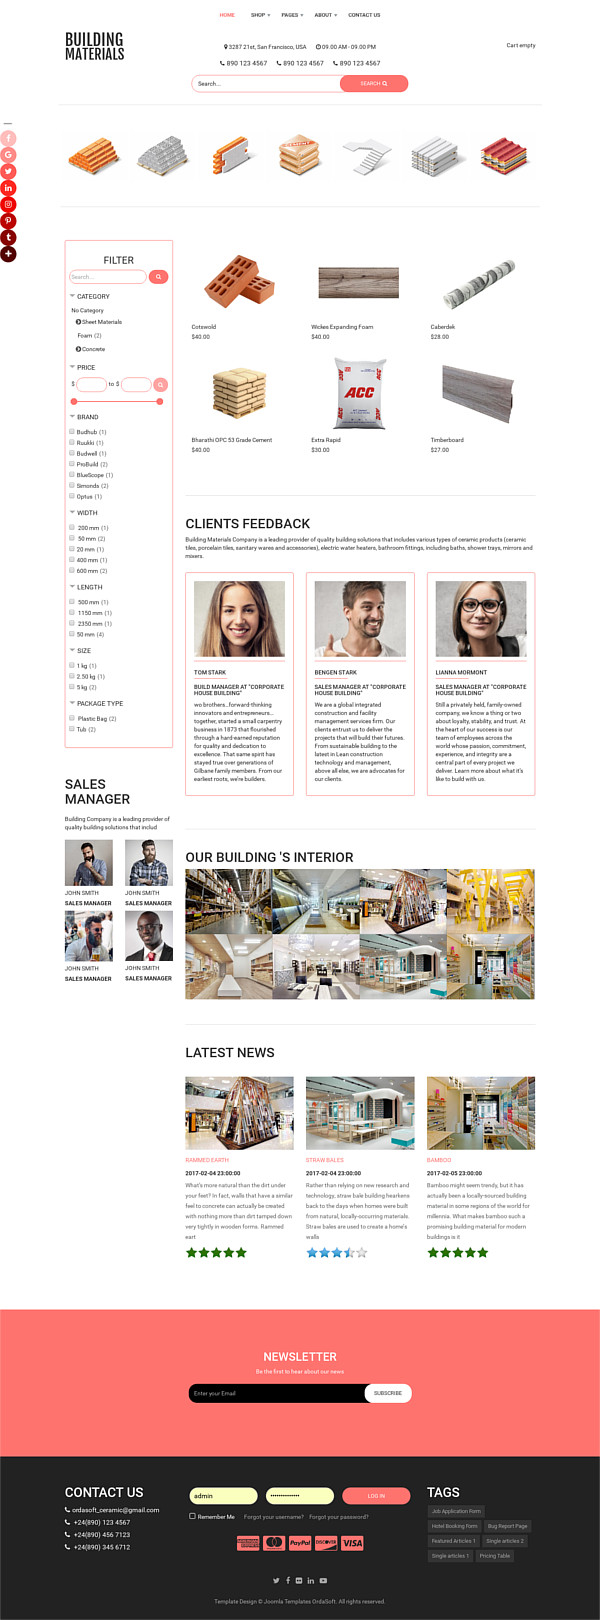 Building Materials - Joomla Construction Materials template , full screen